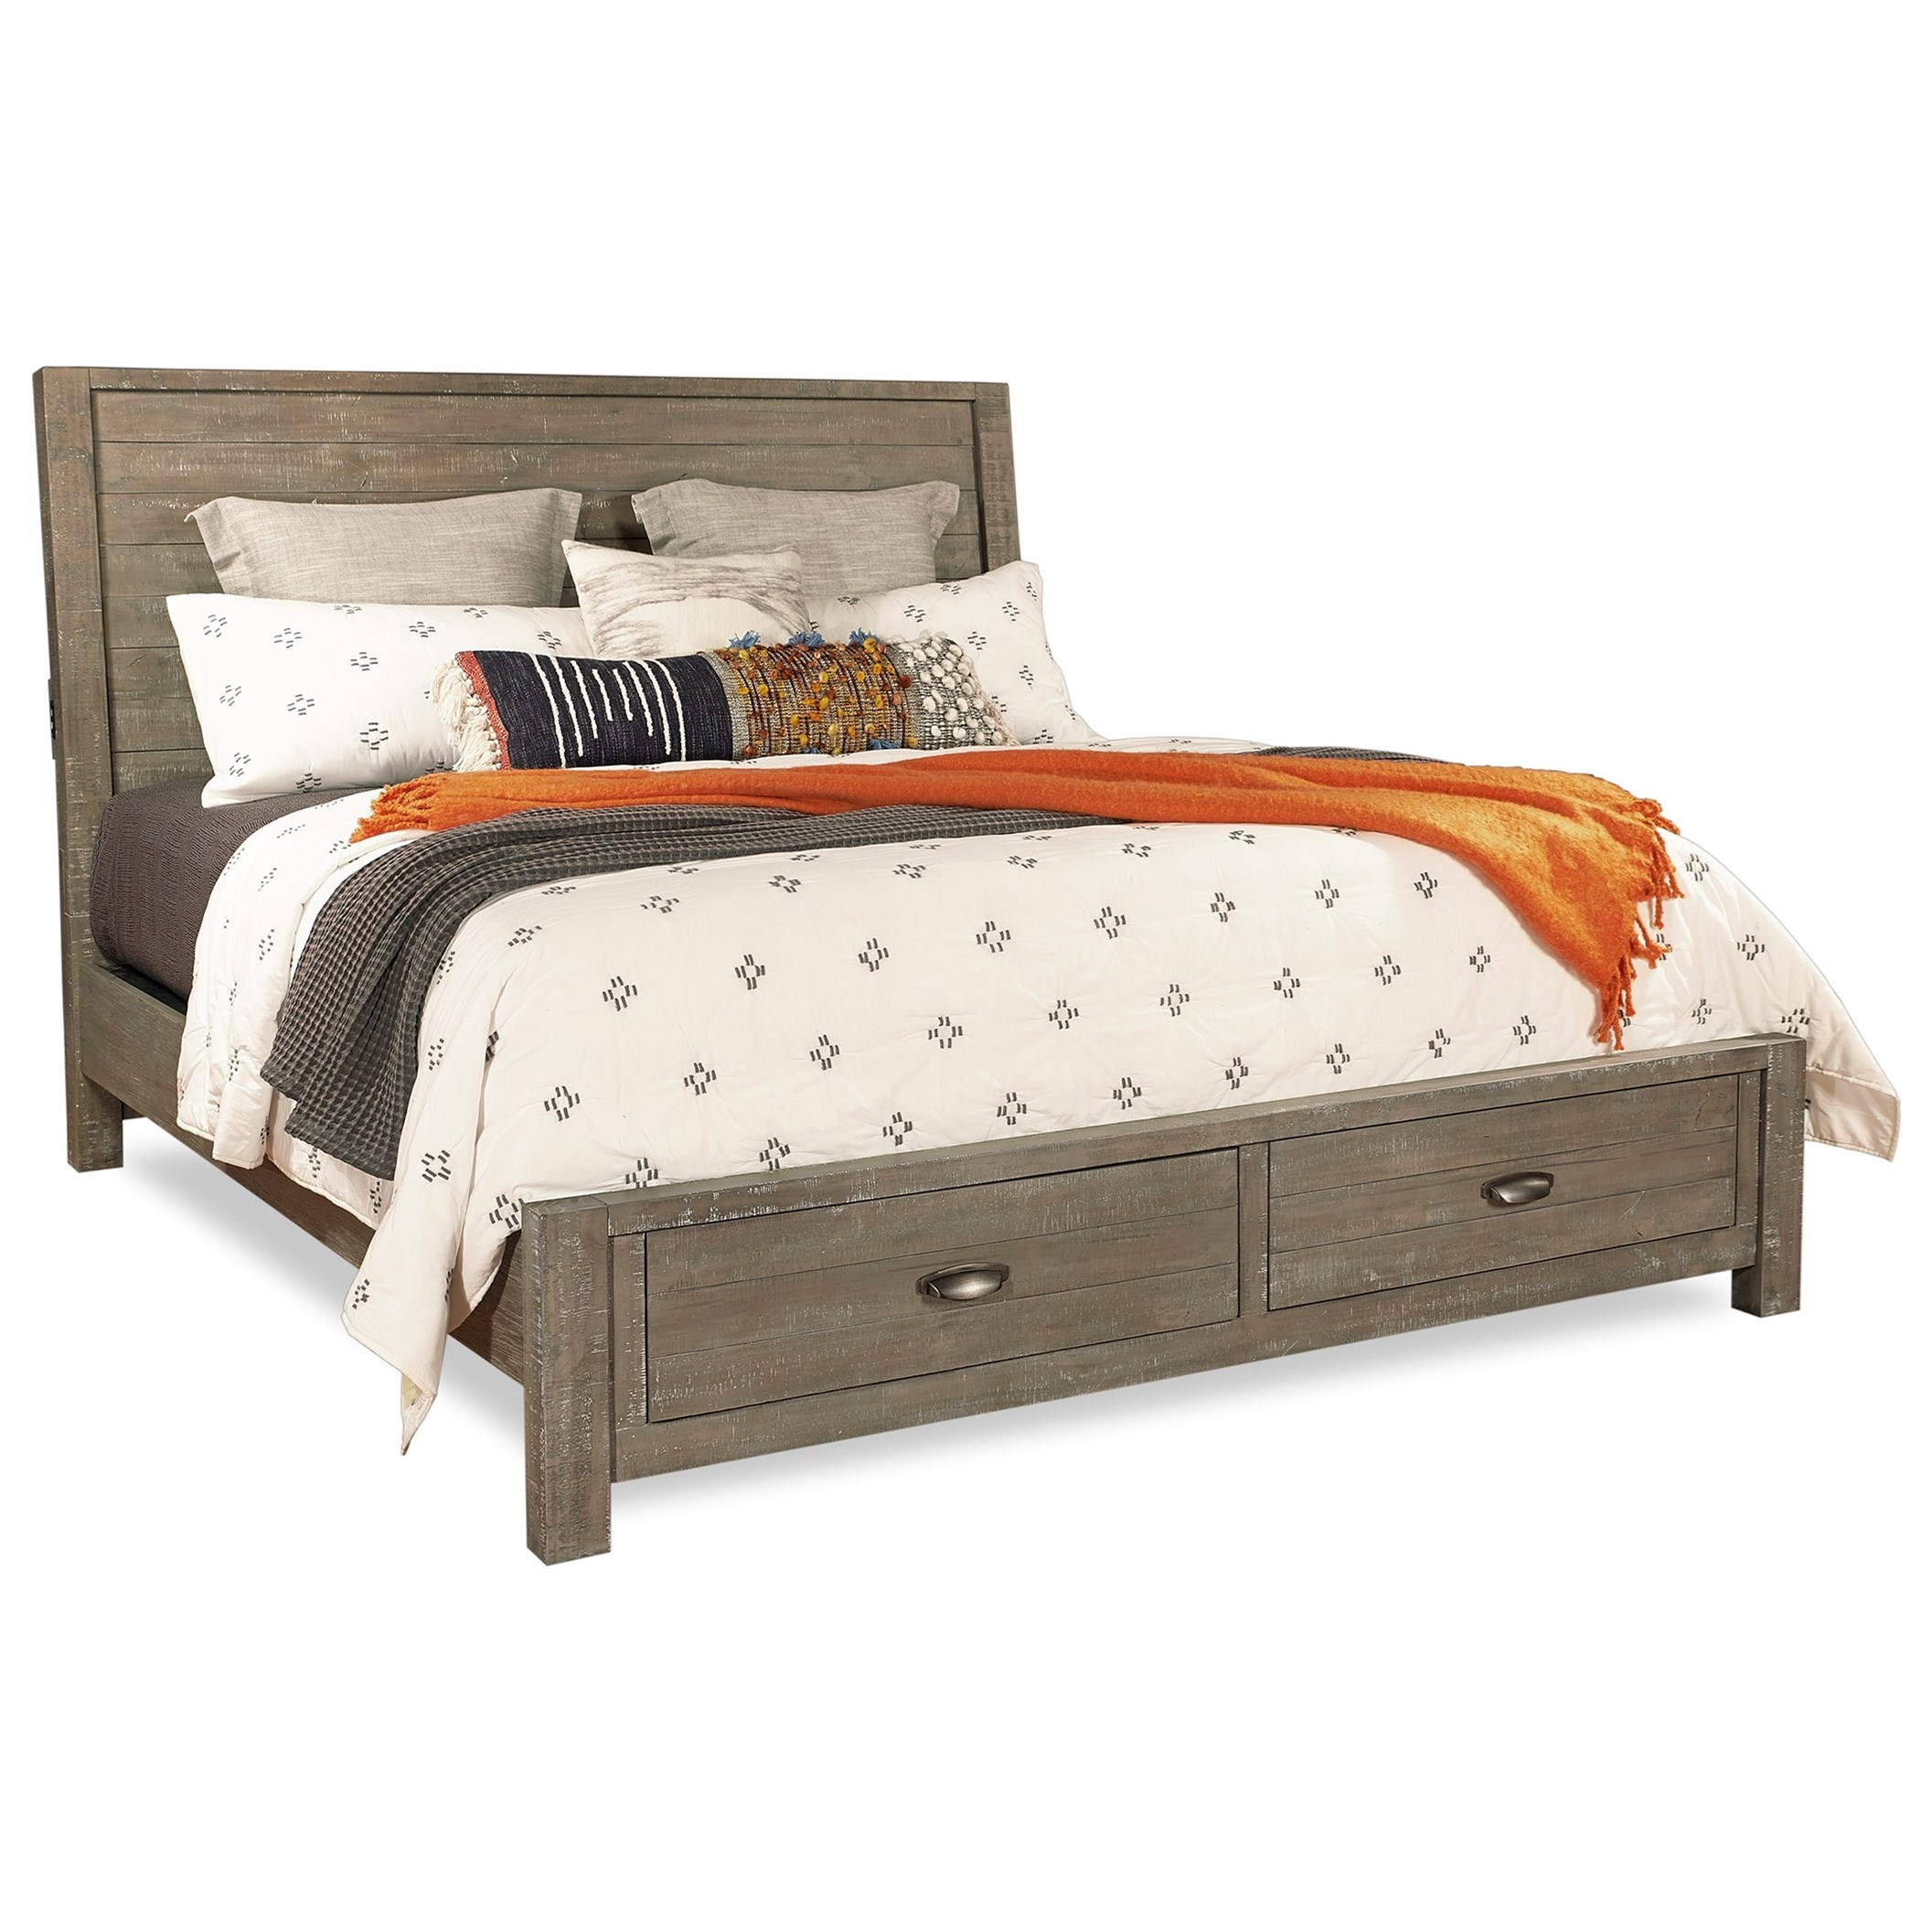 Radiata King Sleigh Storage Bed by Aspenhome at Walker's Furniture